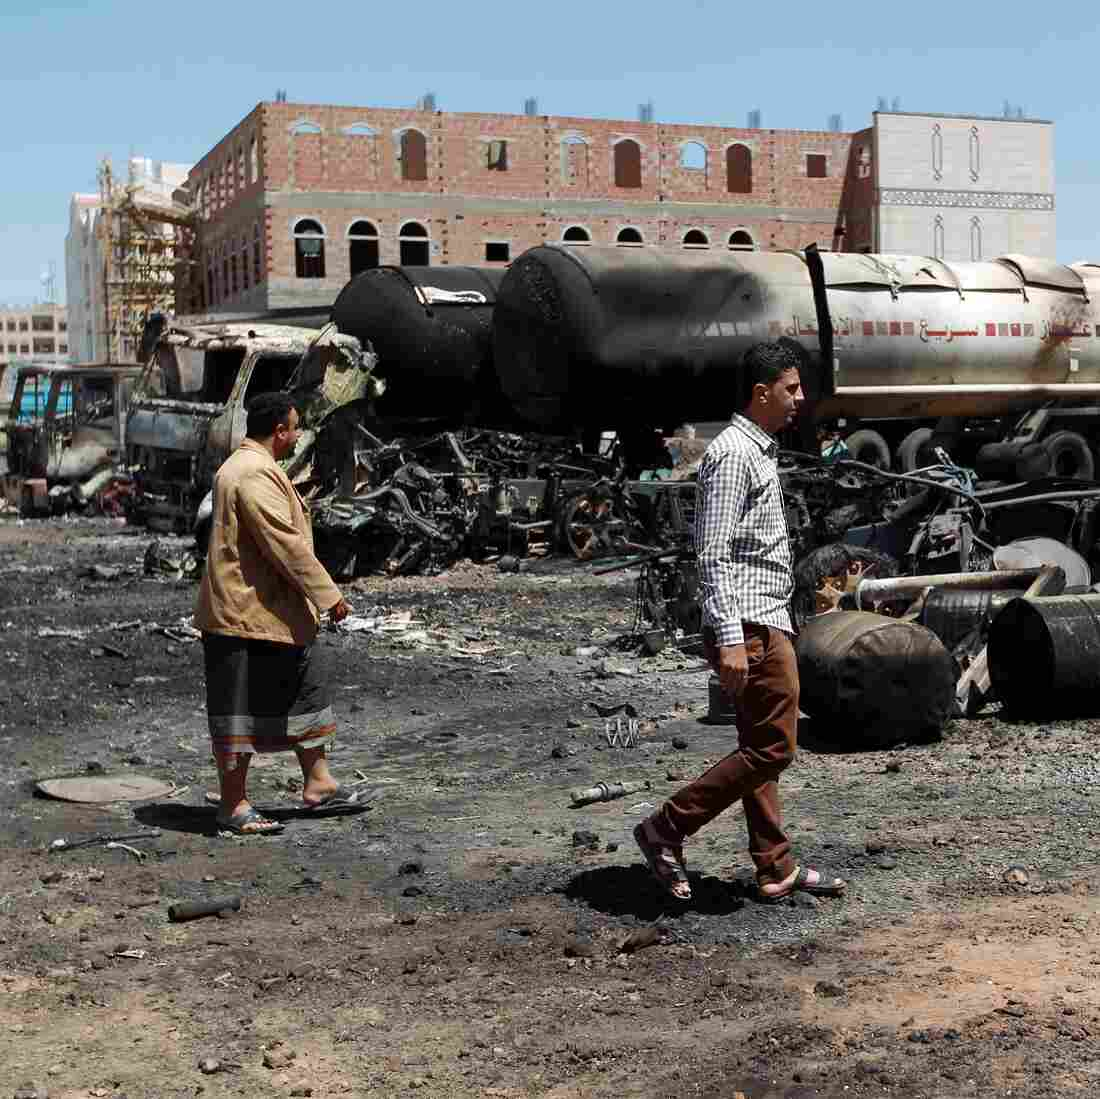 Yemenis walk past near oil tankers that were burnt during clashes between Shiite Houthi rebels and their opponents in the capital, Sanaa, in September. Saudi Arabia launched airstrikes this week to counter the Houthis' offensive.